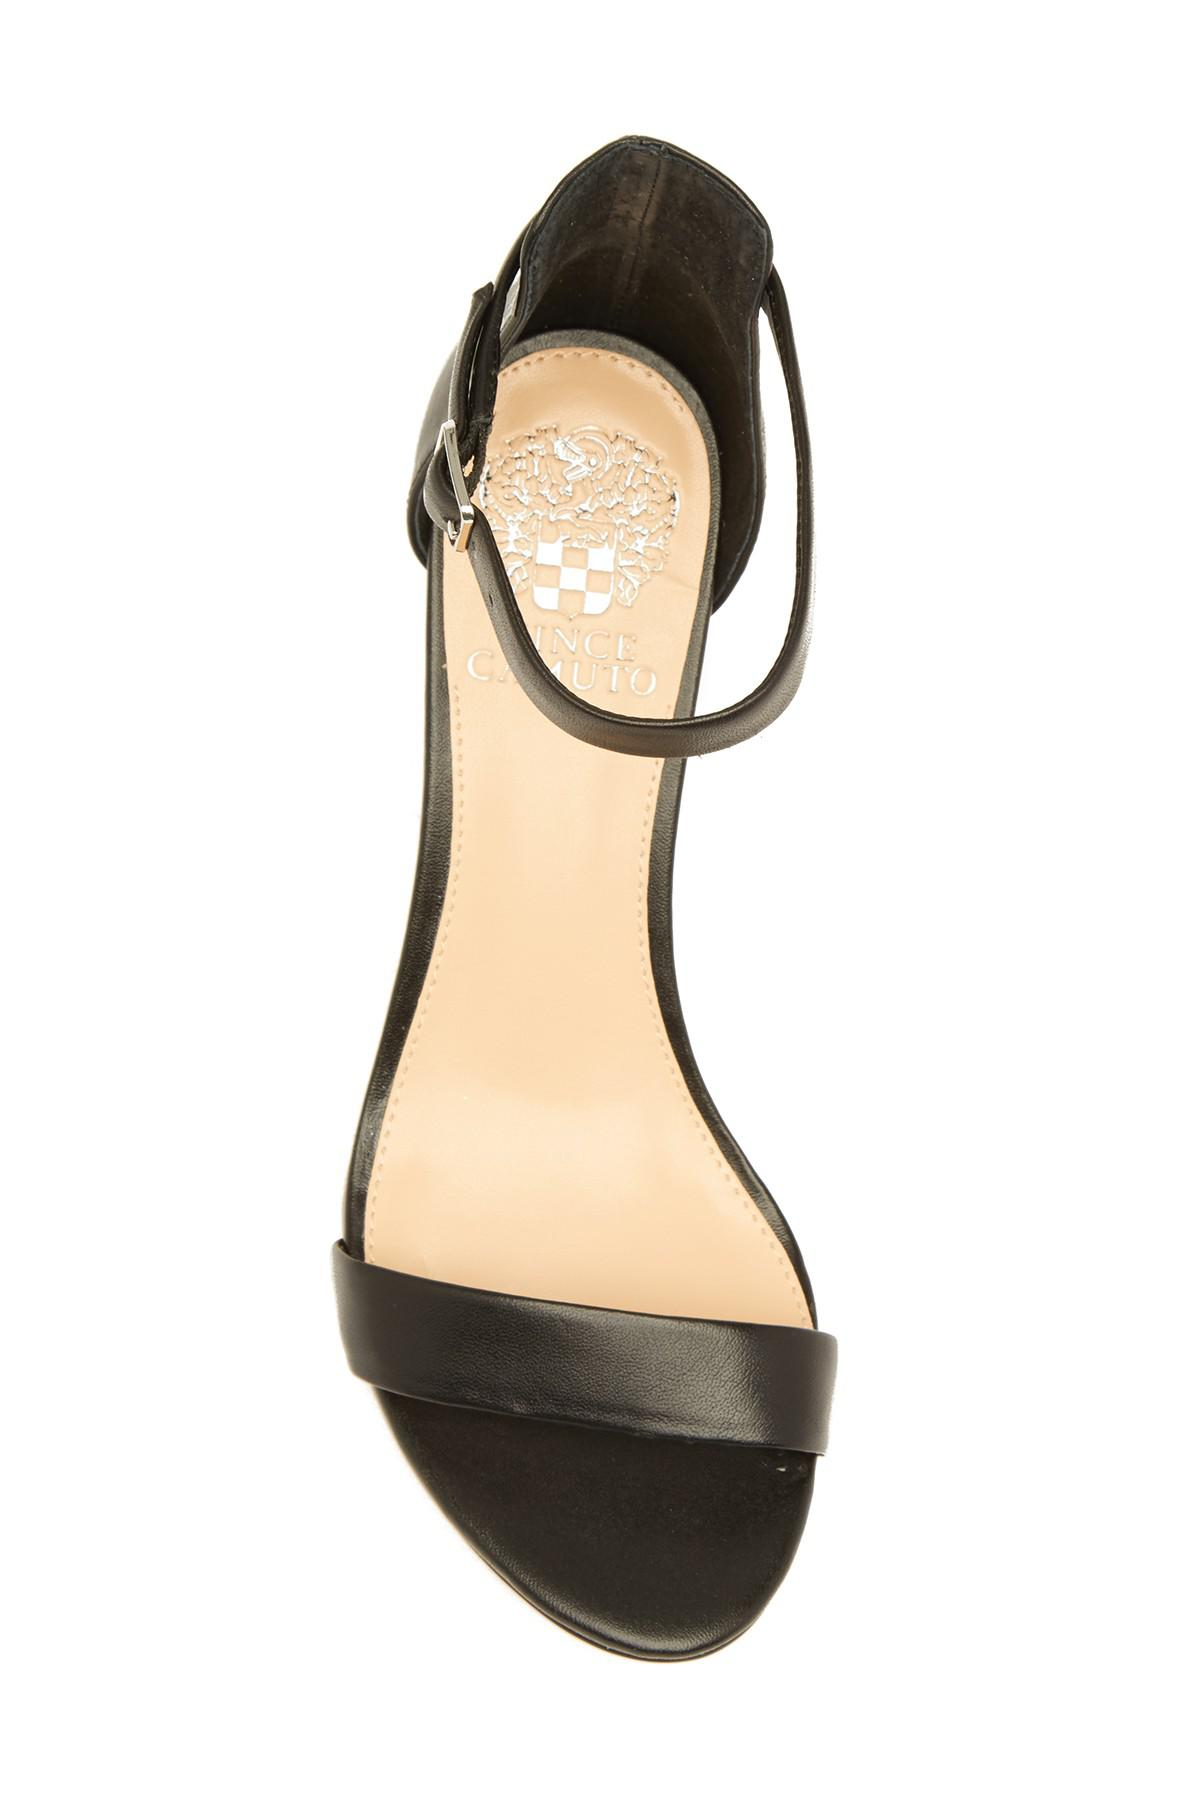 f6803533e00 Vince Camuto - Black Beah Block Heel Ankle Strap Sandal - Lyst. View  fullscreen